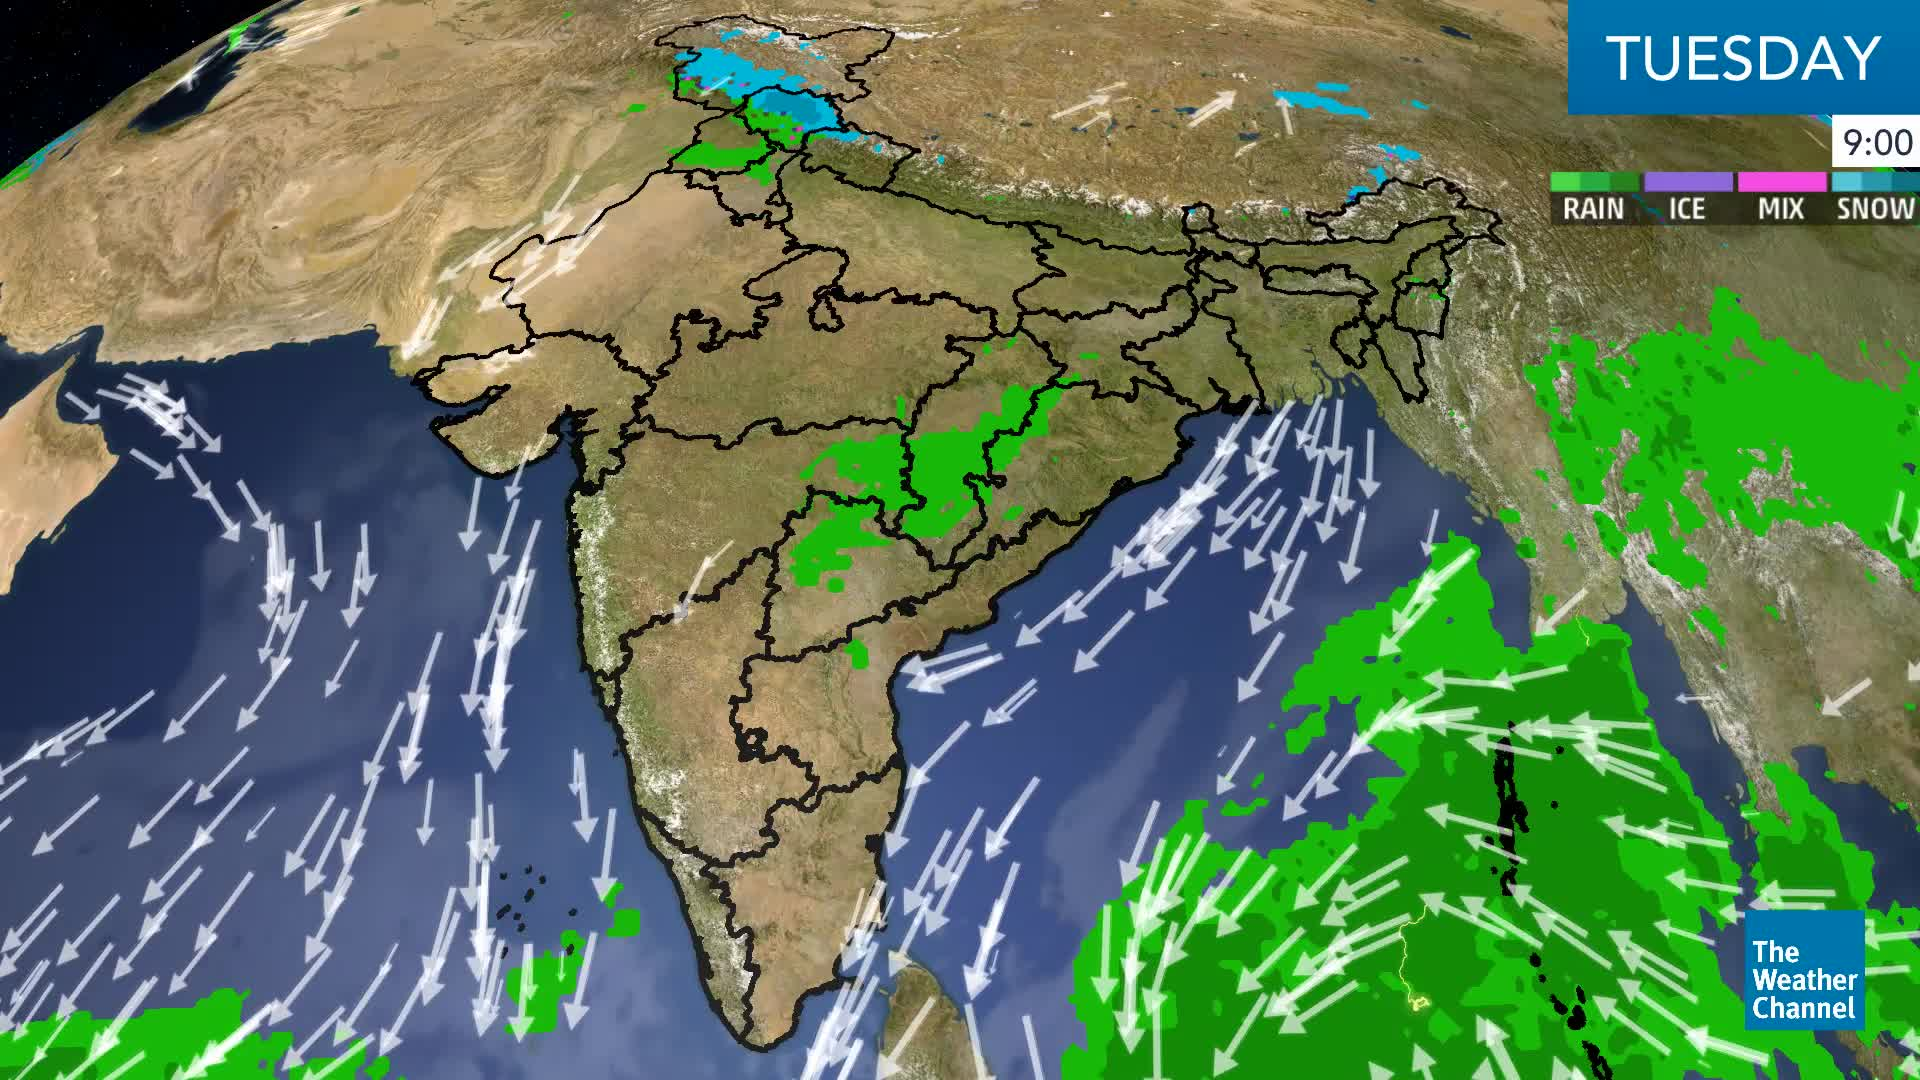 Heavy Snow, Rain Forecast for Himachal Pradesh Today